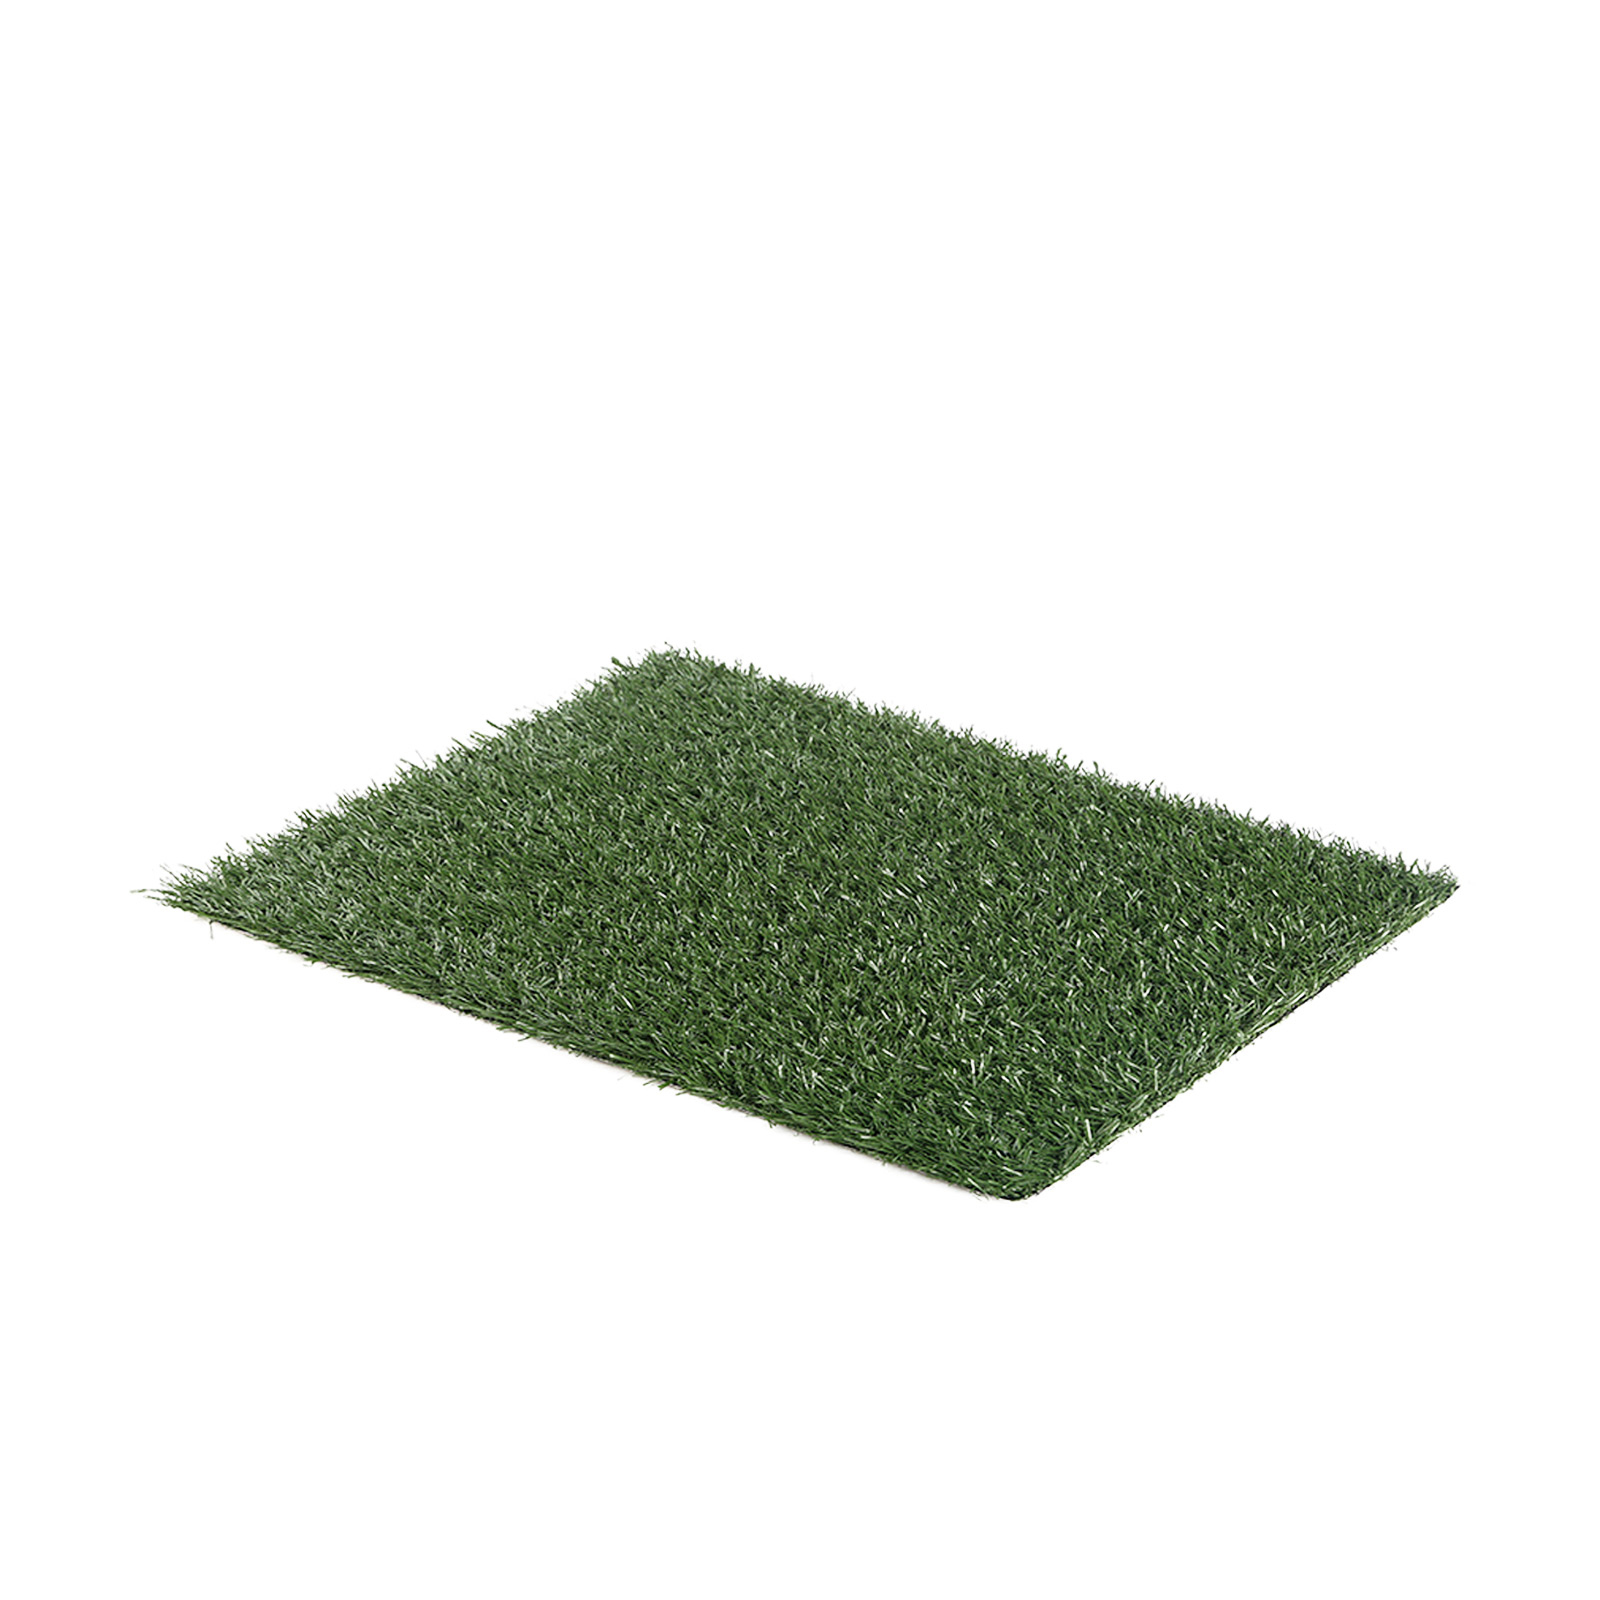 Pet Potty Training Pad Tray 69 x 43cm - 1 Grass Mat Only